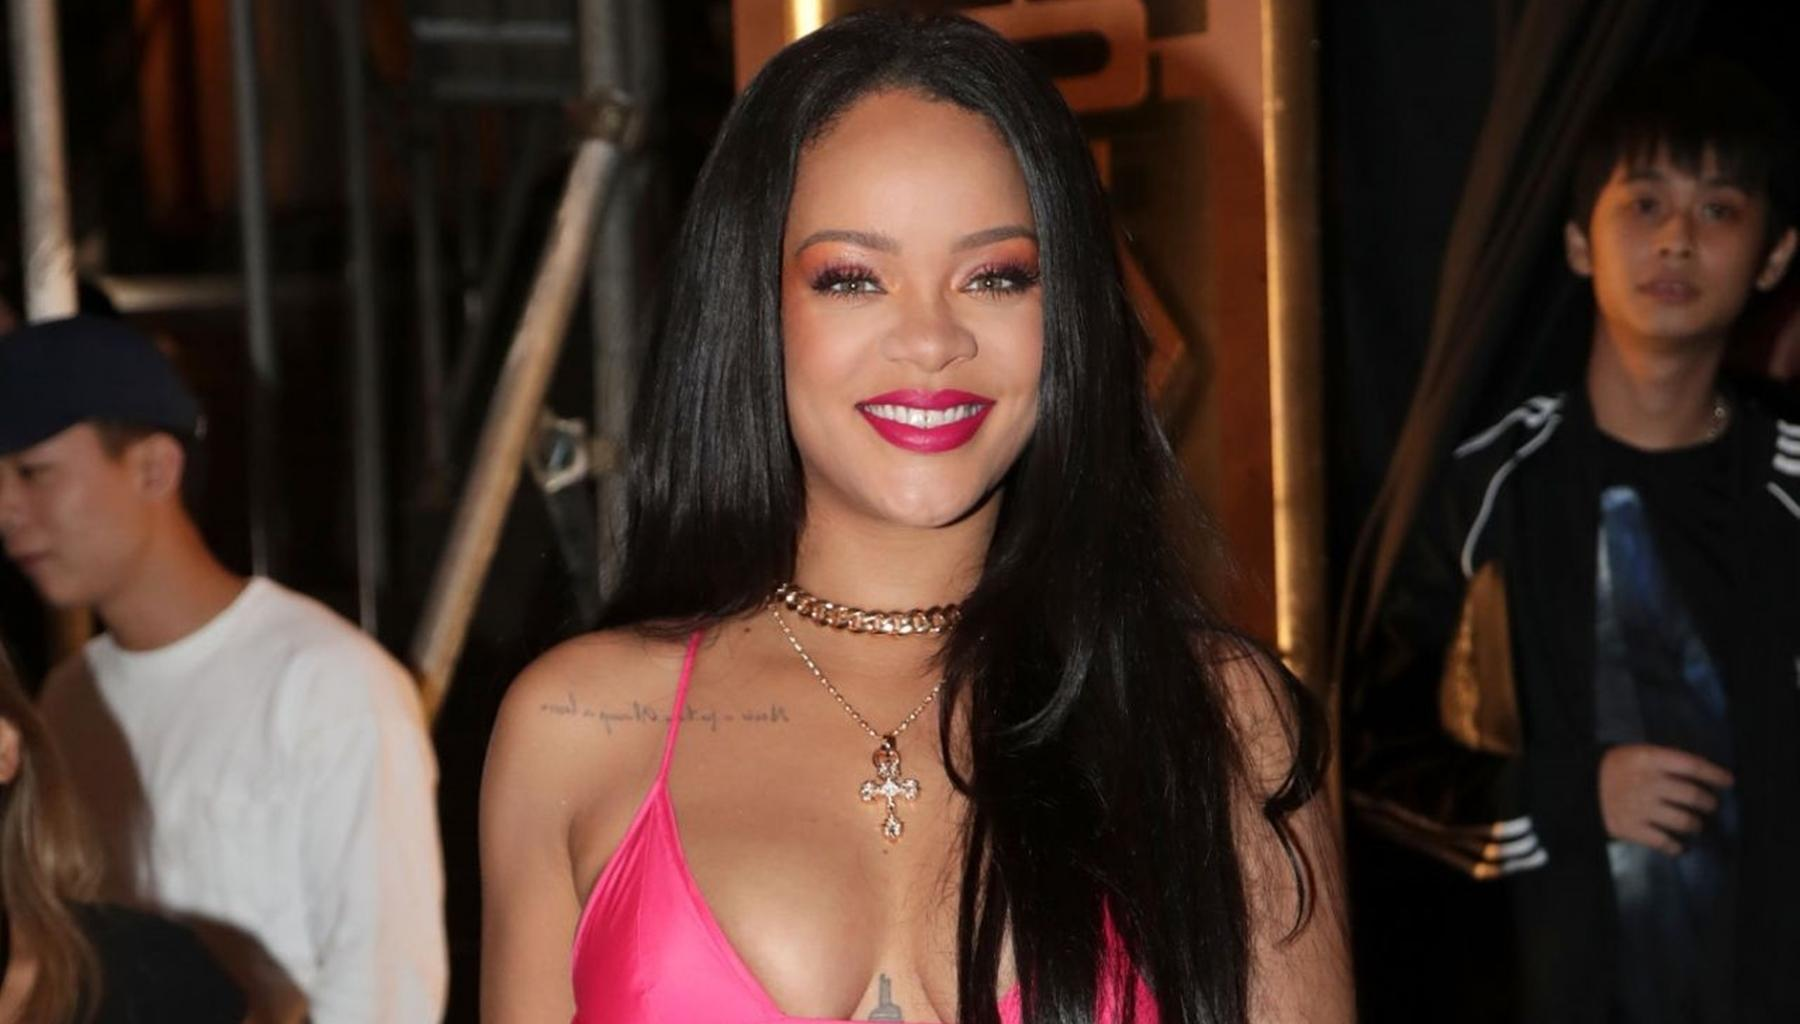 Rihanna Changes Her Hair Style In New Photos After Breakup From Hassan Jameel